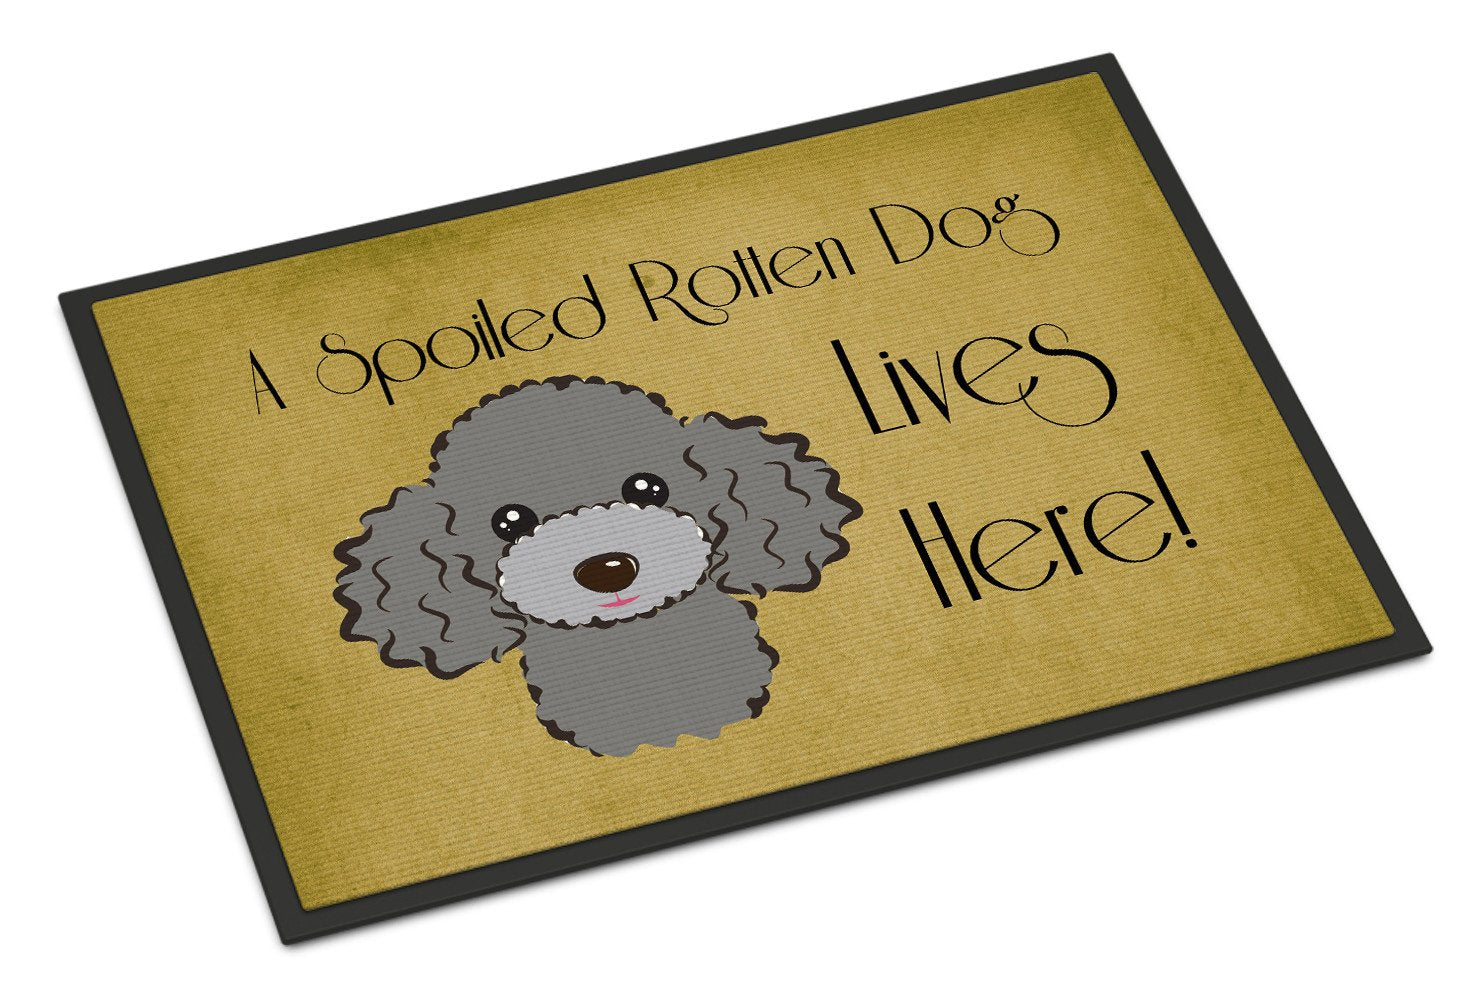 Silver Gray Poodle Spoiled Dog Lives Here Indoor or Outdoor Mat 18x27 BB1507MAT - the-store.com